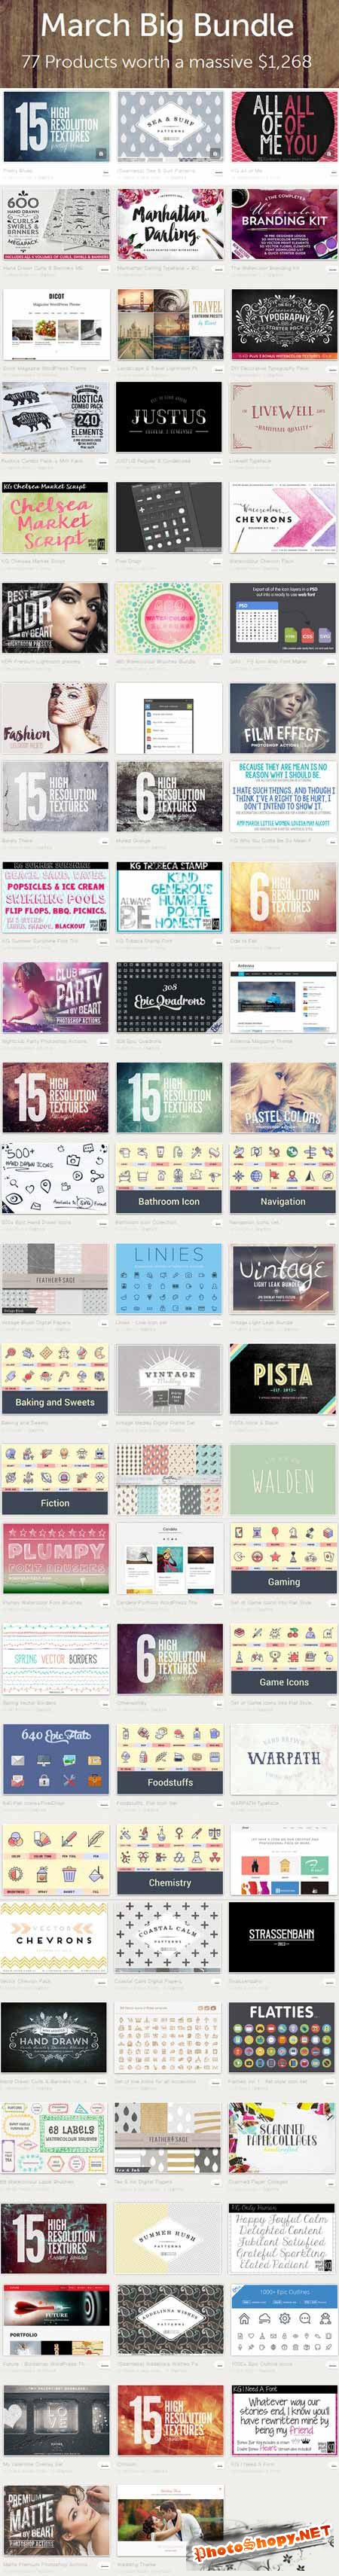 March Big Bundle 2015 - 77 Premium Creativemarket Items